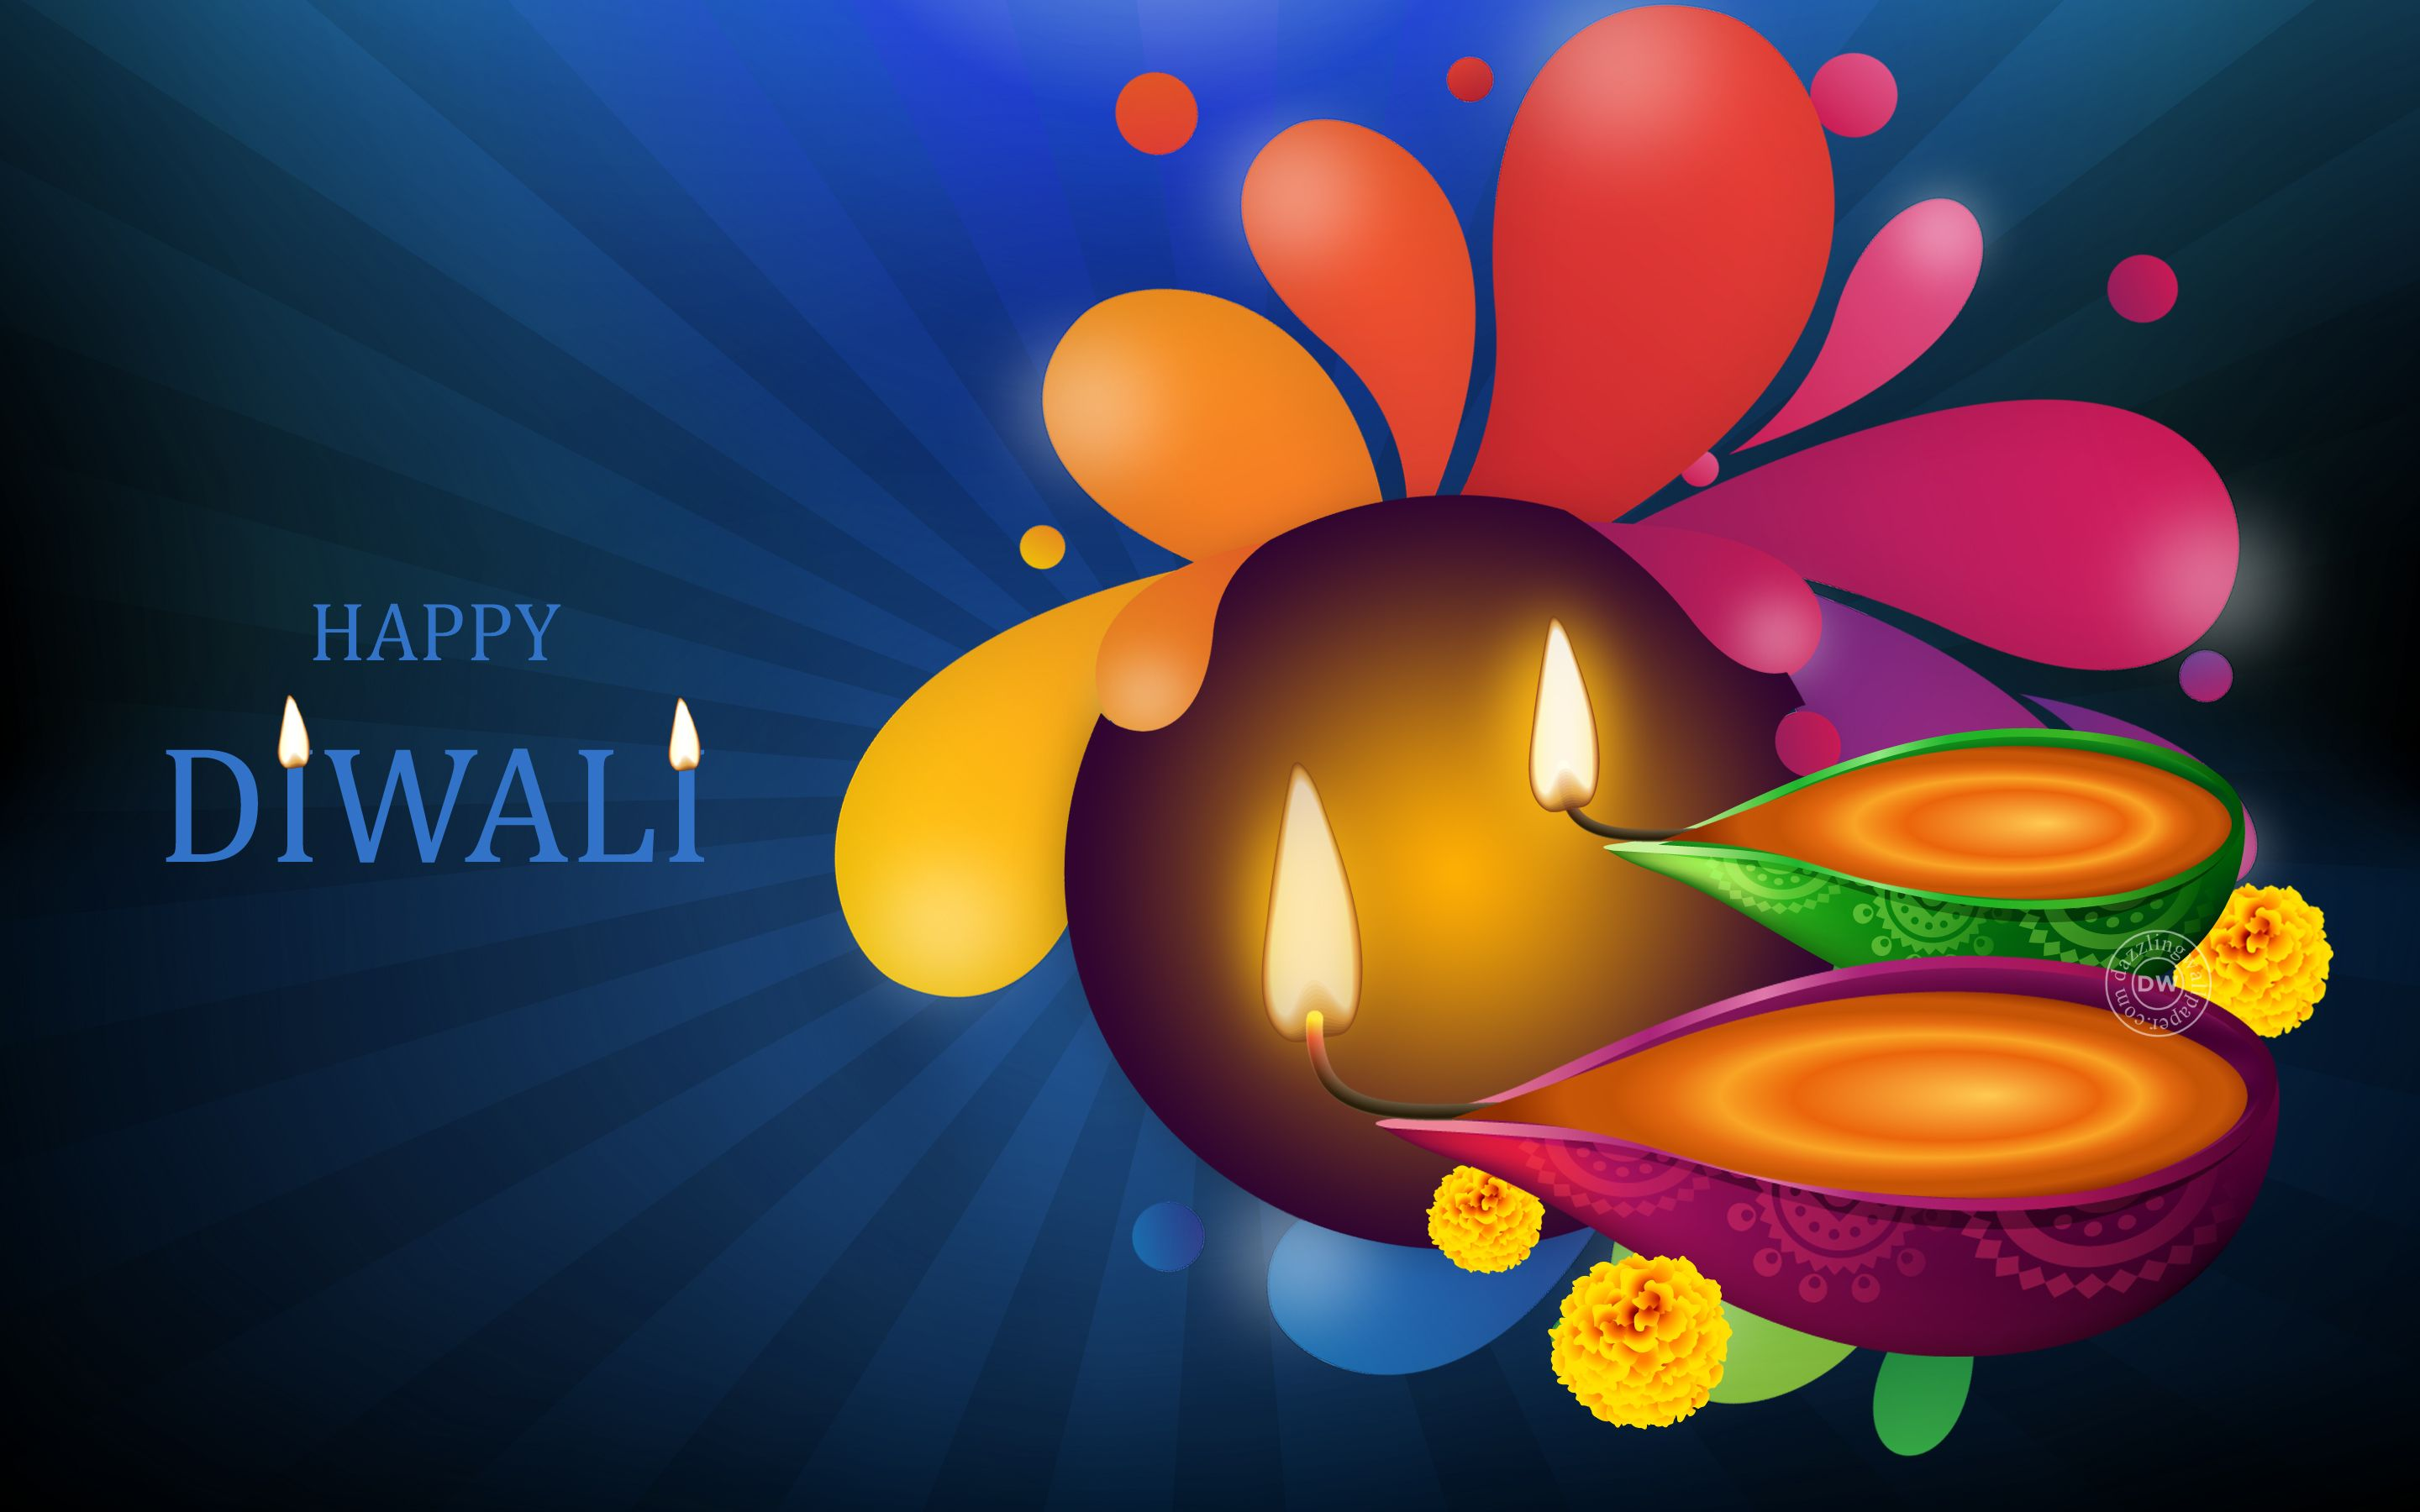 Wallpaper download diwali - Happy Diwali 2015 Wallpapers Photos Pics Free Download And Share On Facebook Http